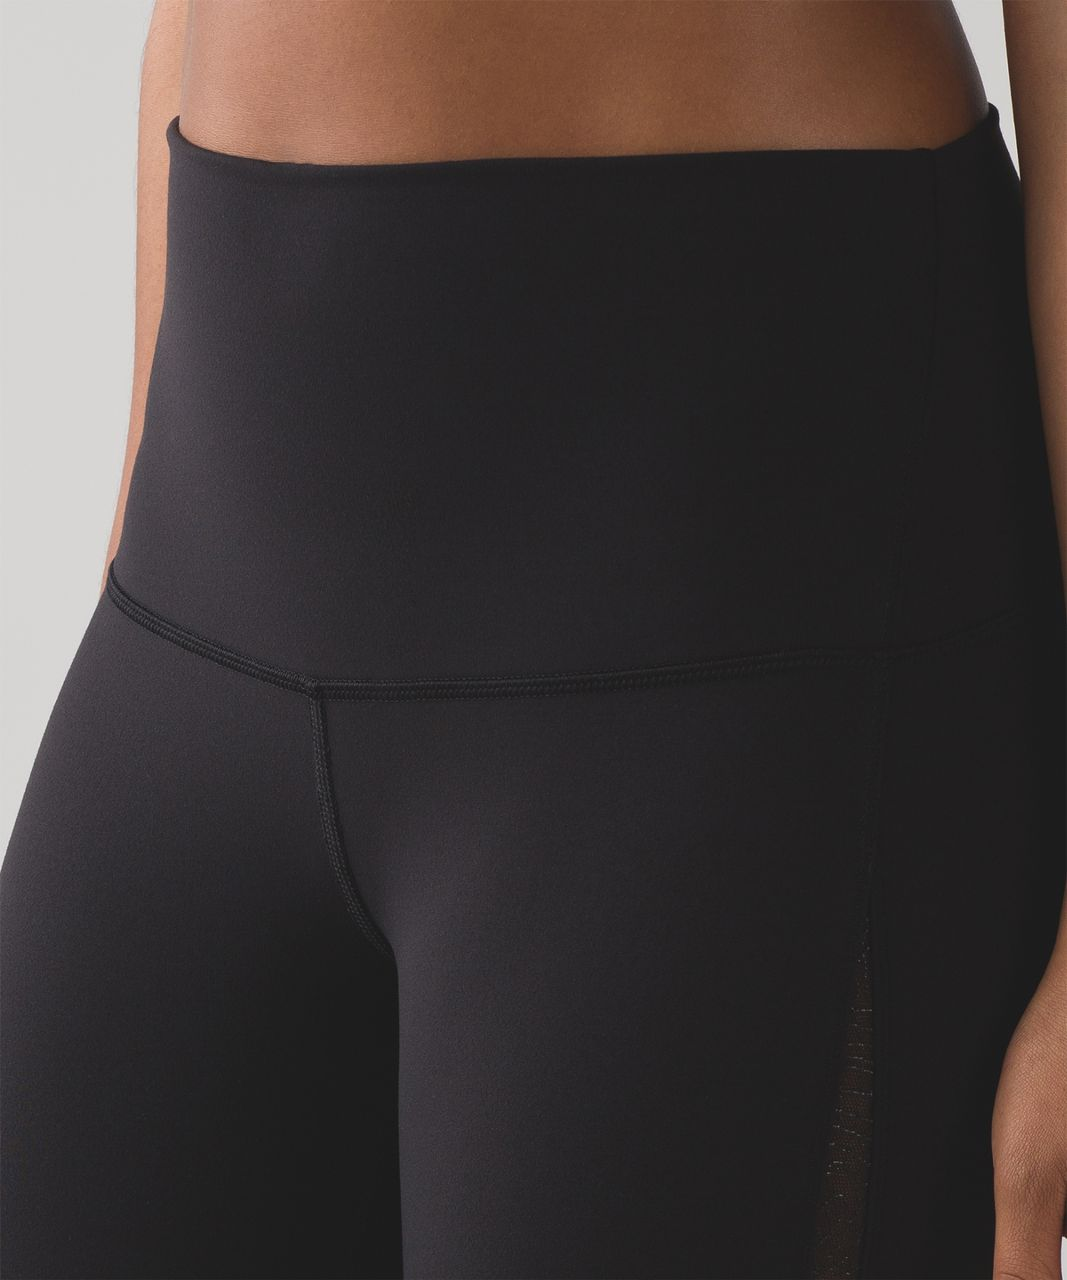 Lululemon Wunder Under Pant (Hi-Rise) (Infinite) - Black